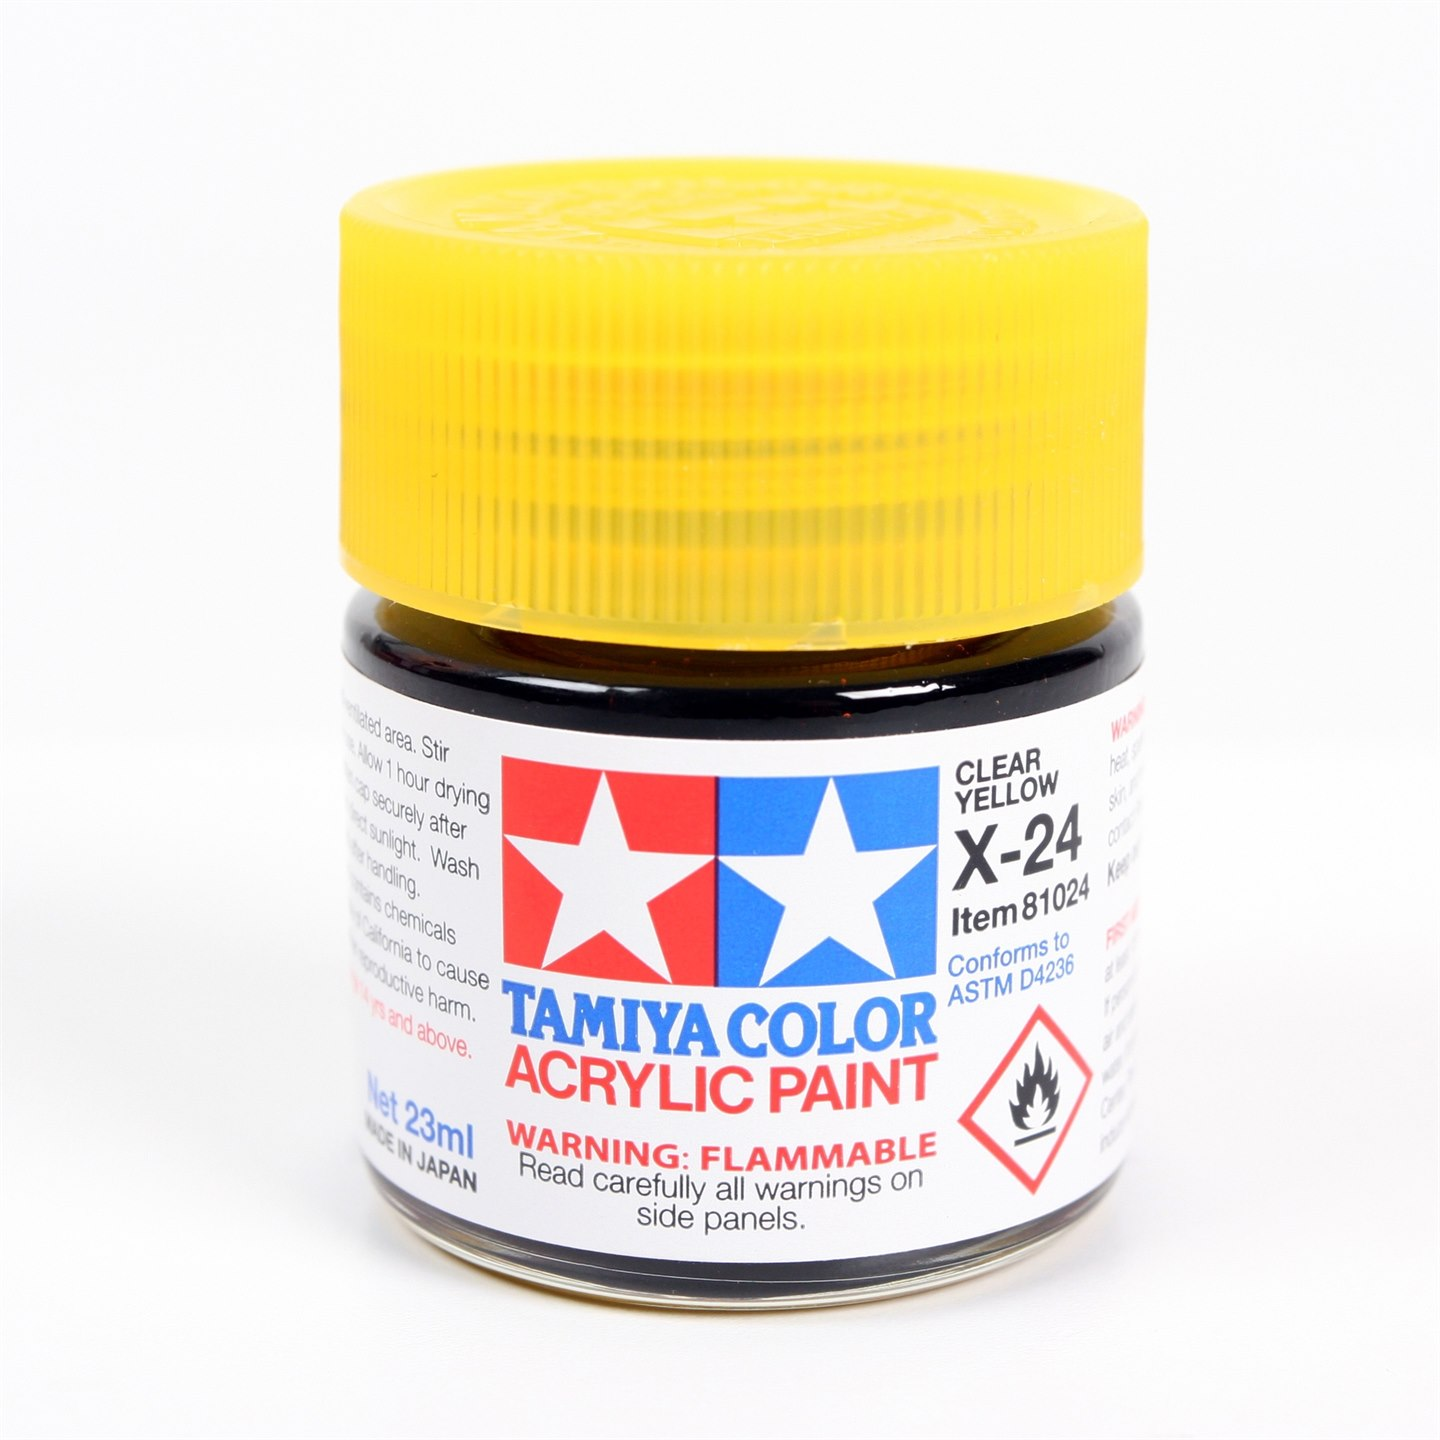 Tamiya Color Acrylic Paint X-24 (Clear Yellow) (23ml)